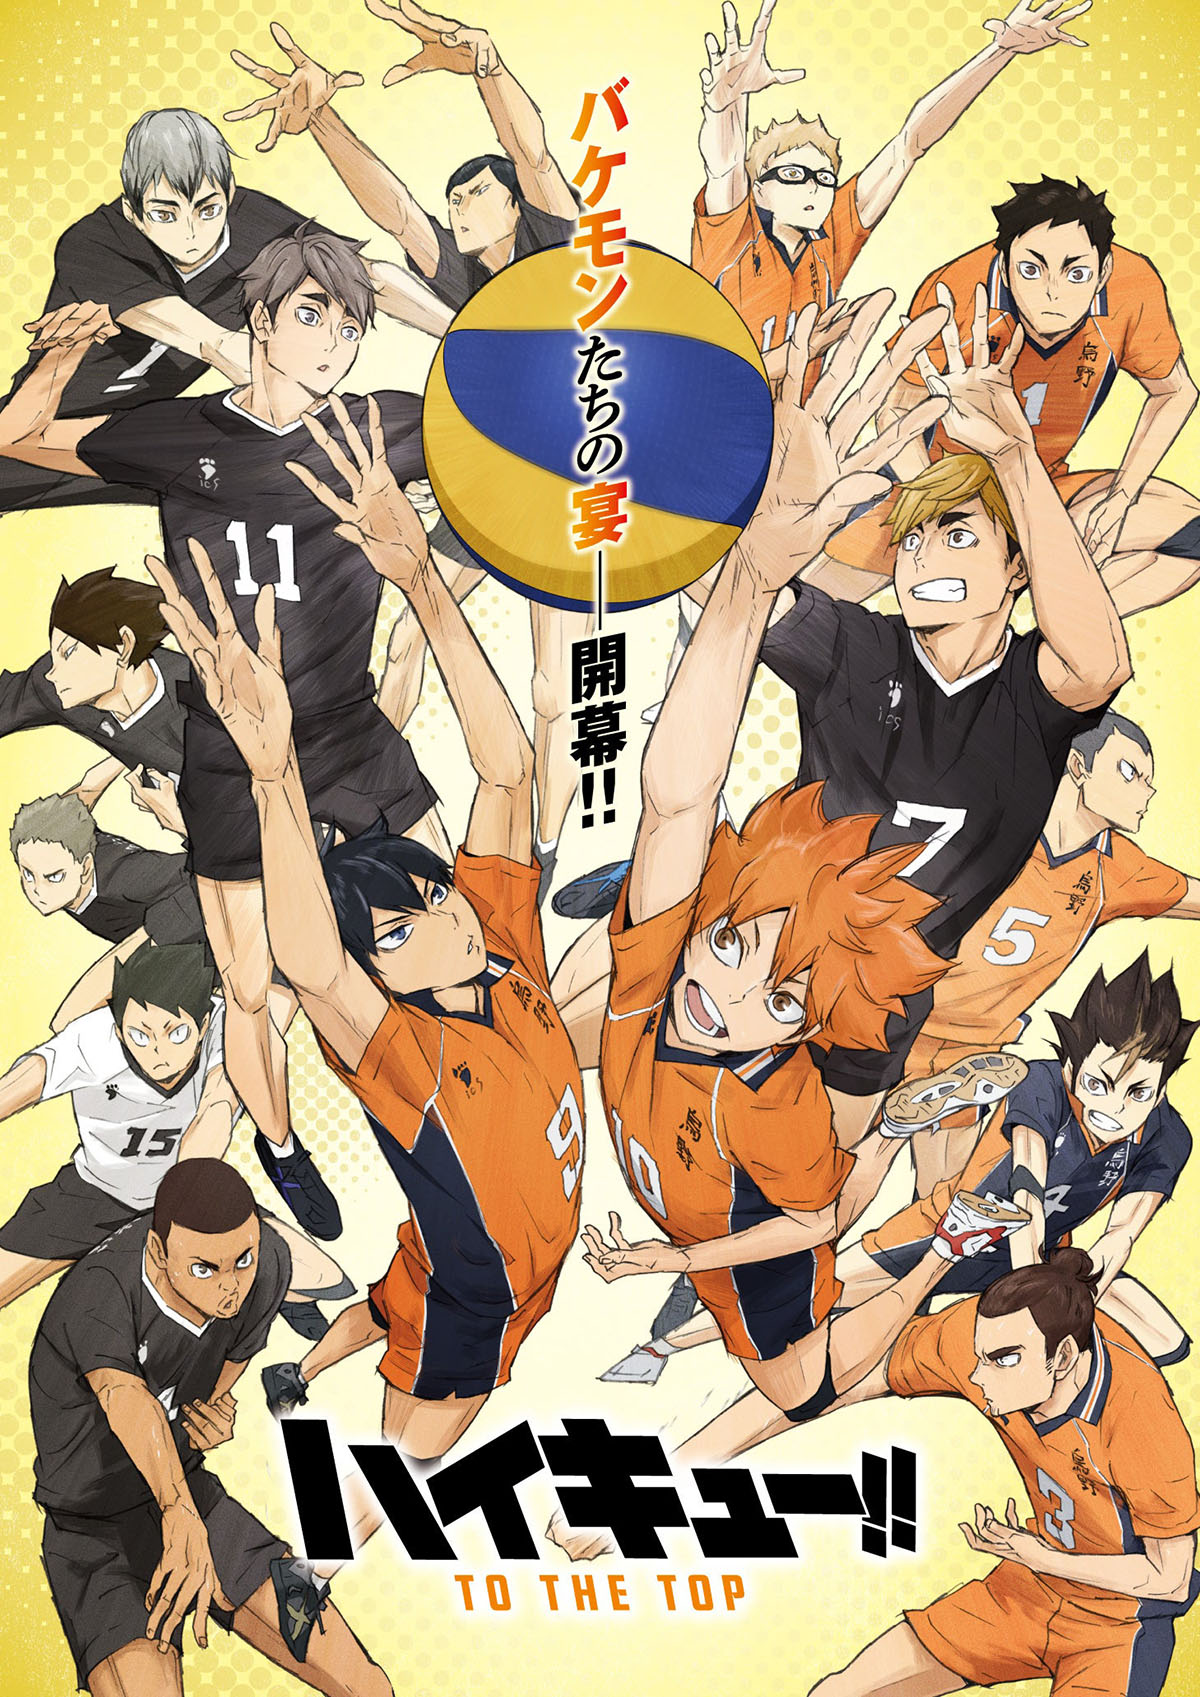 Haikyuu!! Anime 'To The Top' Second Cour to Debut in October, Haikyuu Stage Play confirmed!